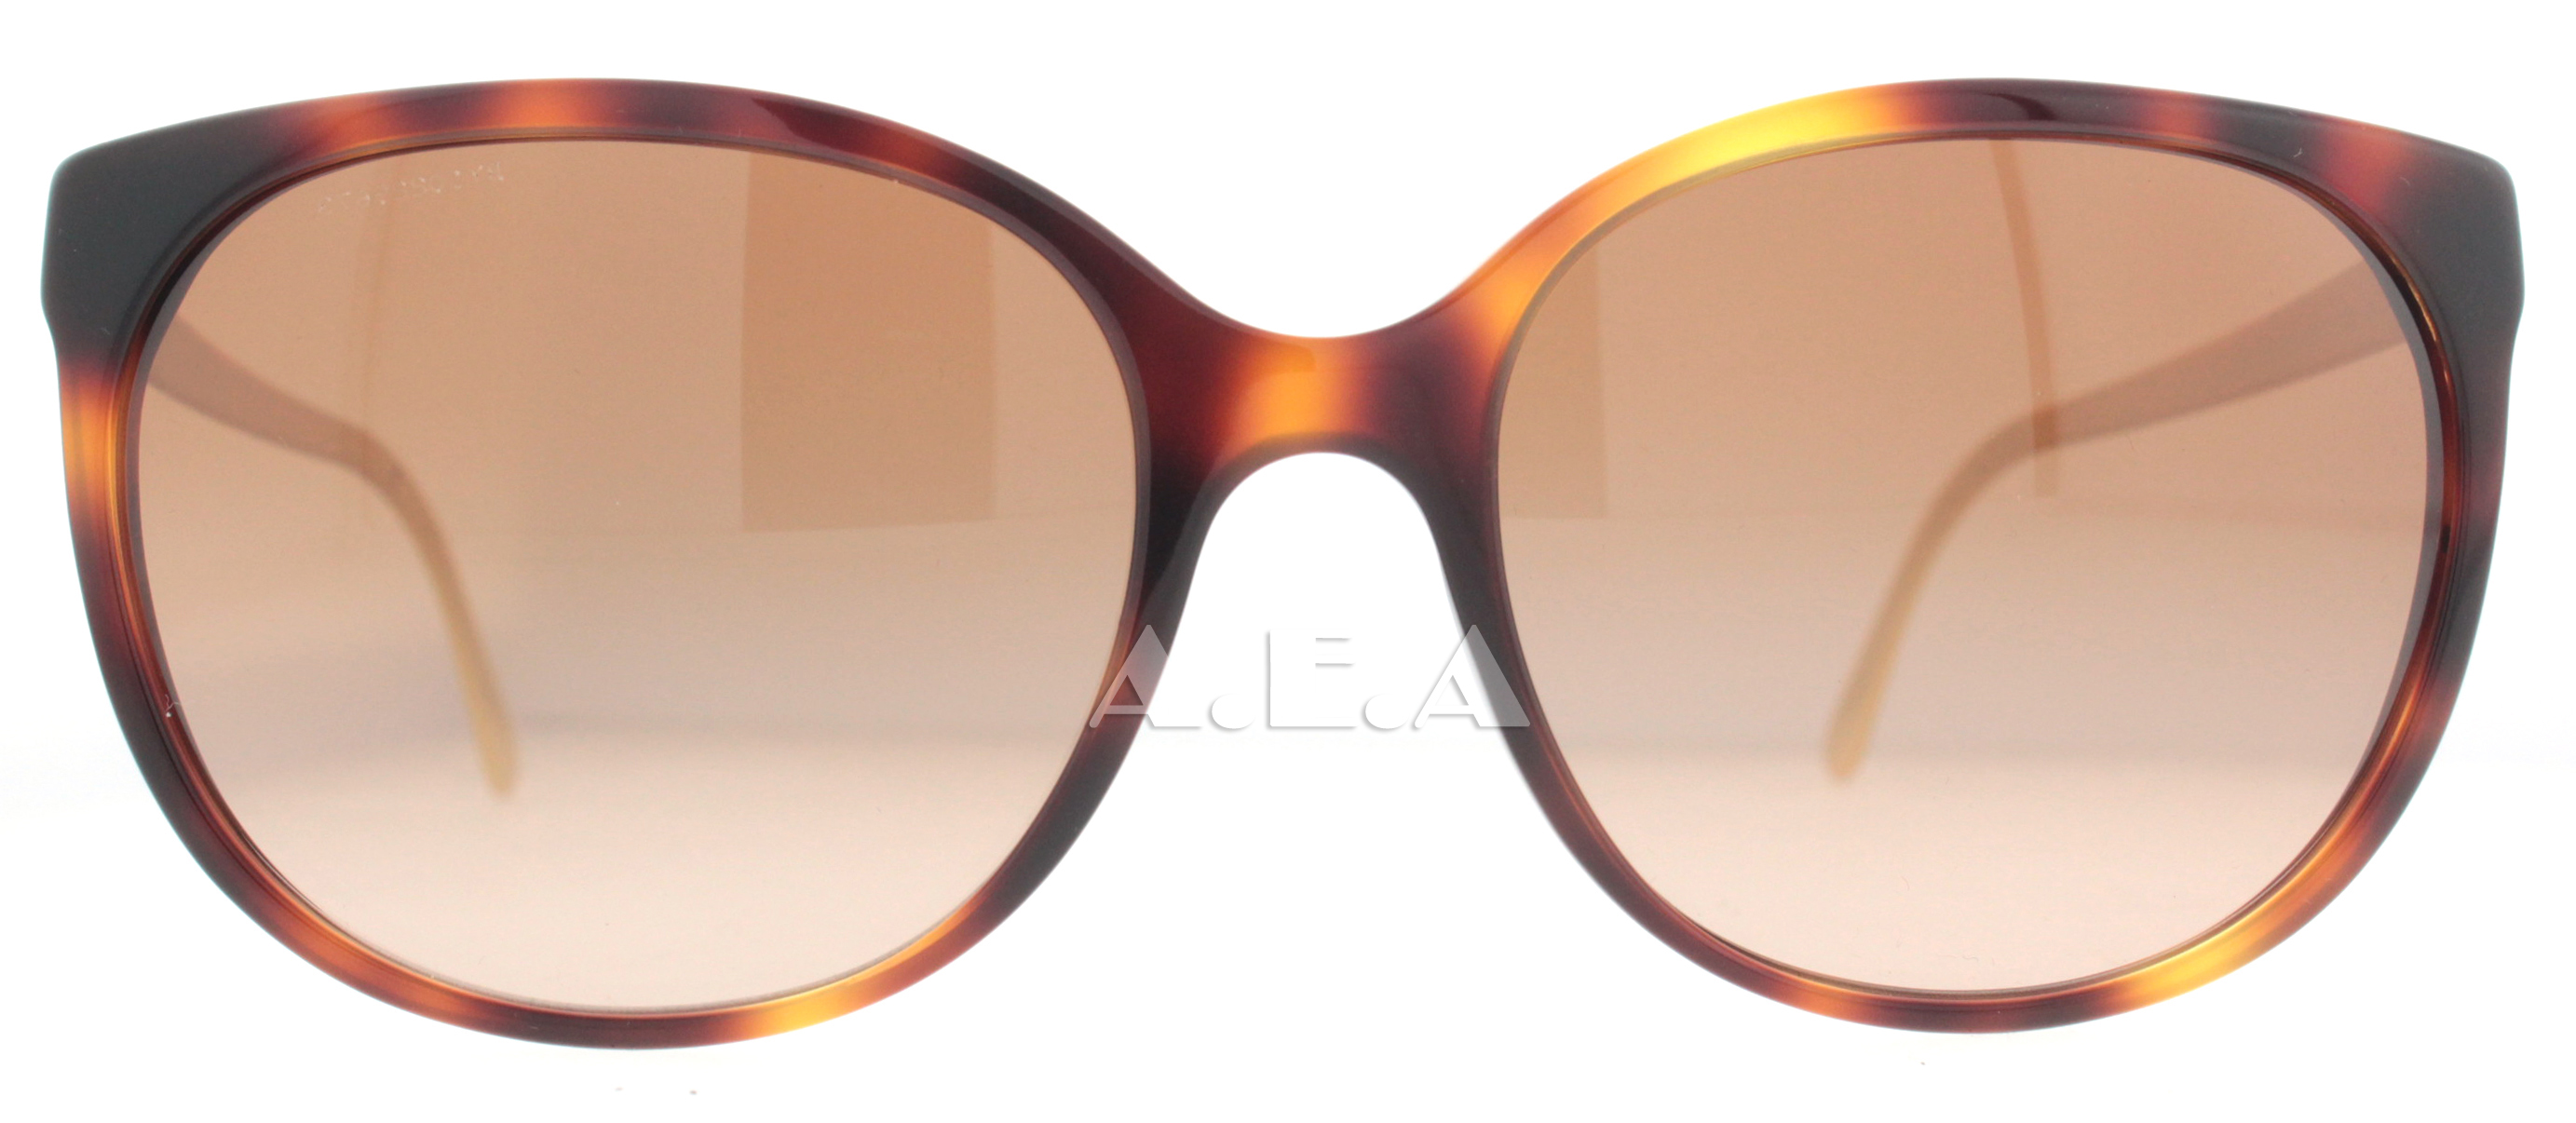 womens sunglasses  be4146 womens